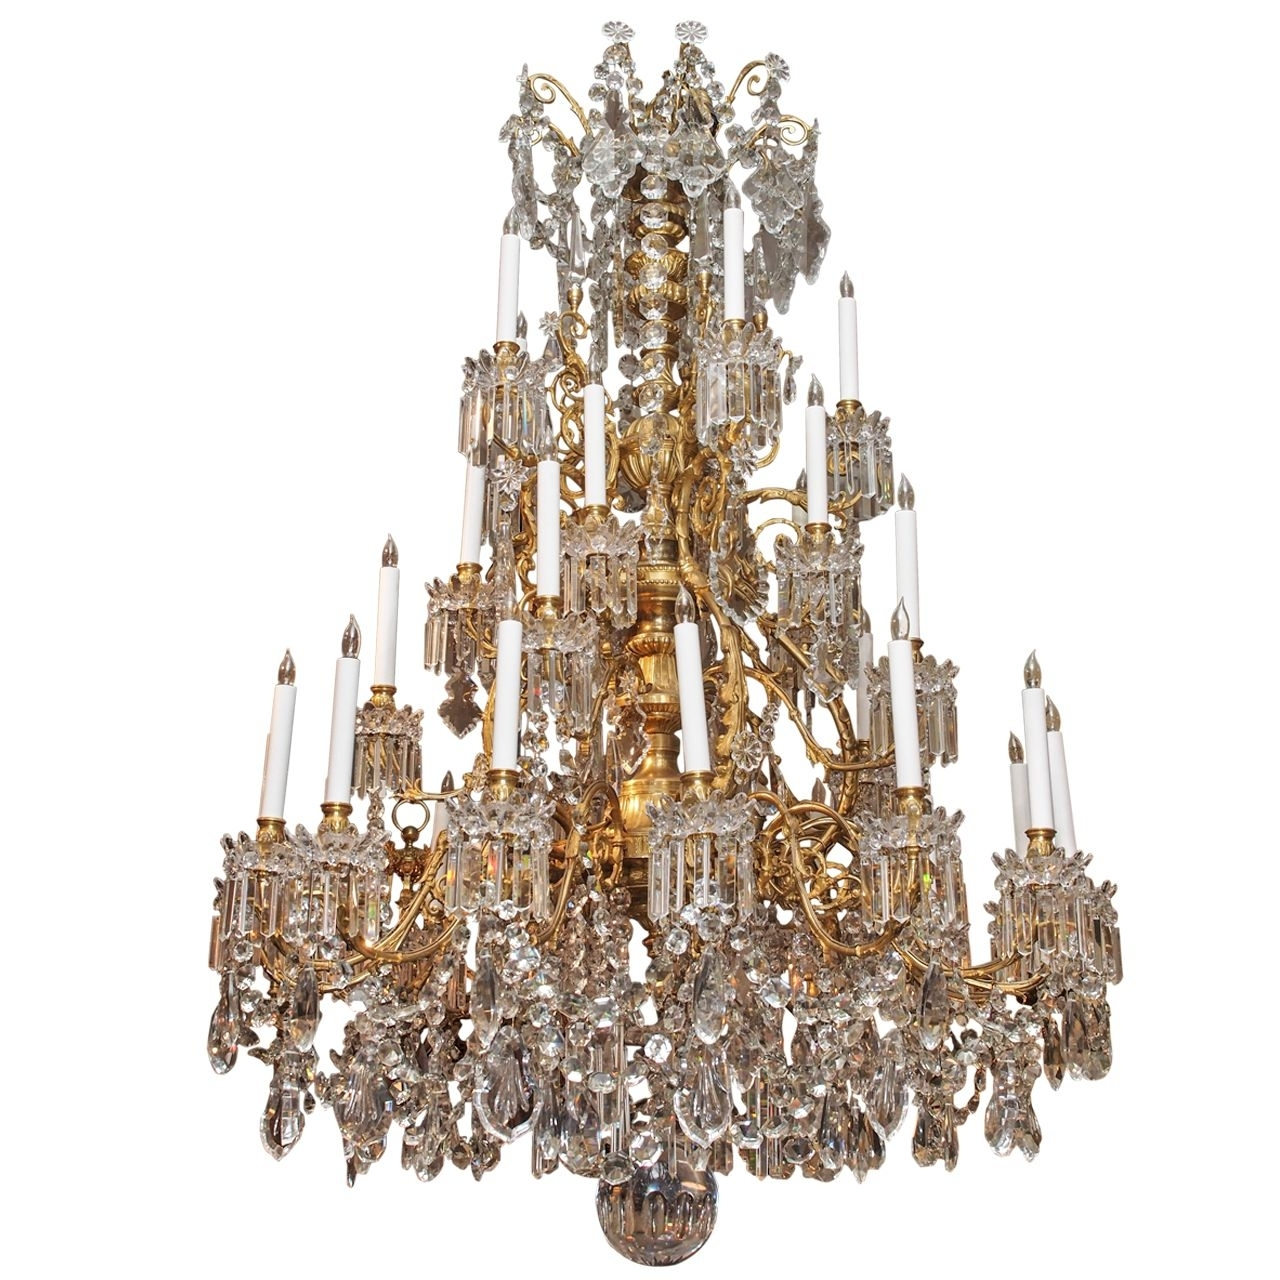 Magnificent Antique French Baccarat Crystal Chandelier Circa 1850 Intended For Favorite Antique Chandeliers (View 17 of 20)